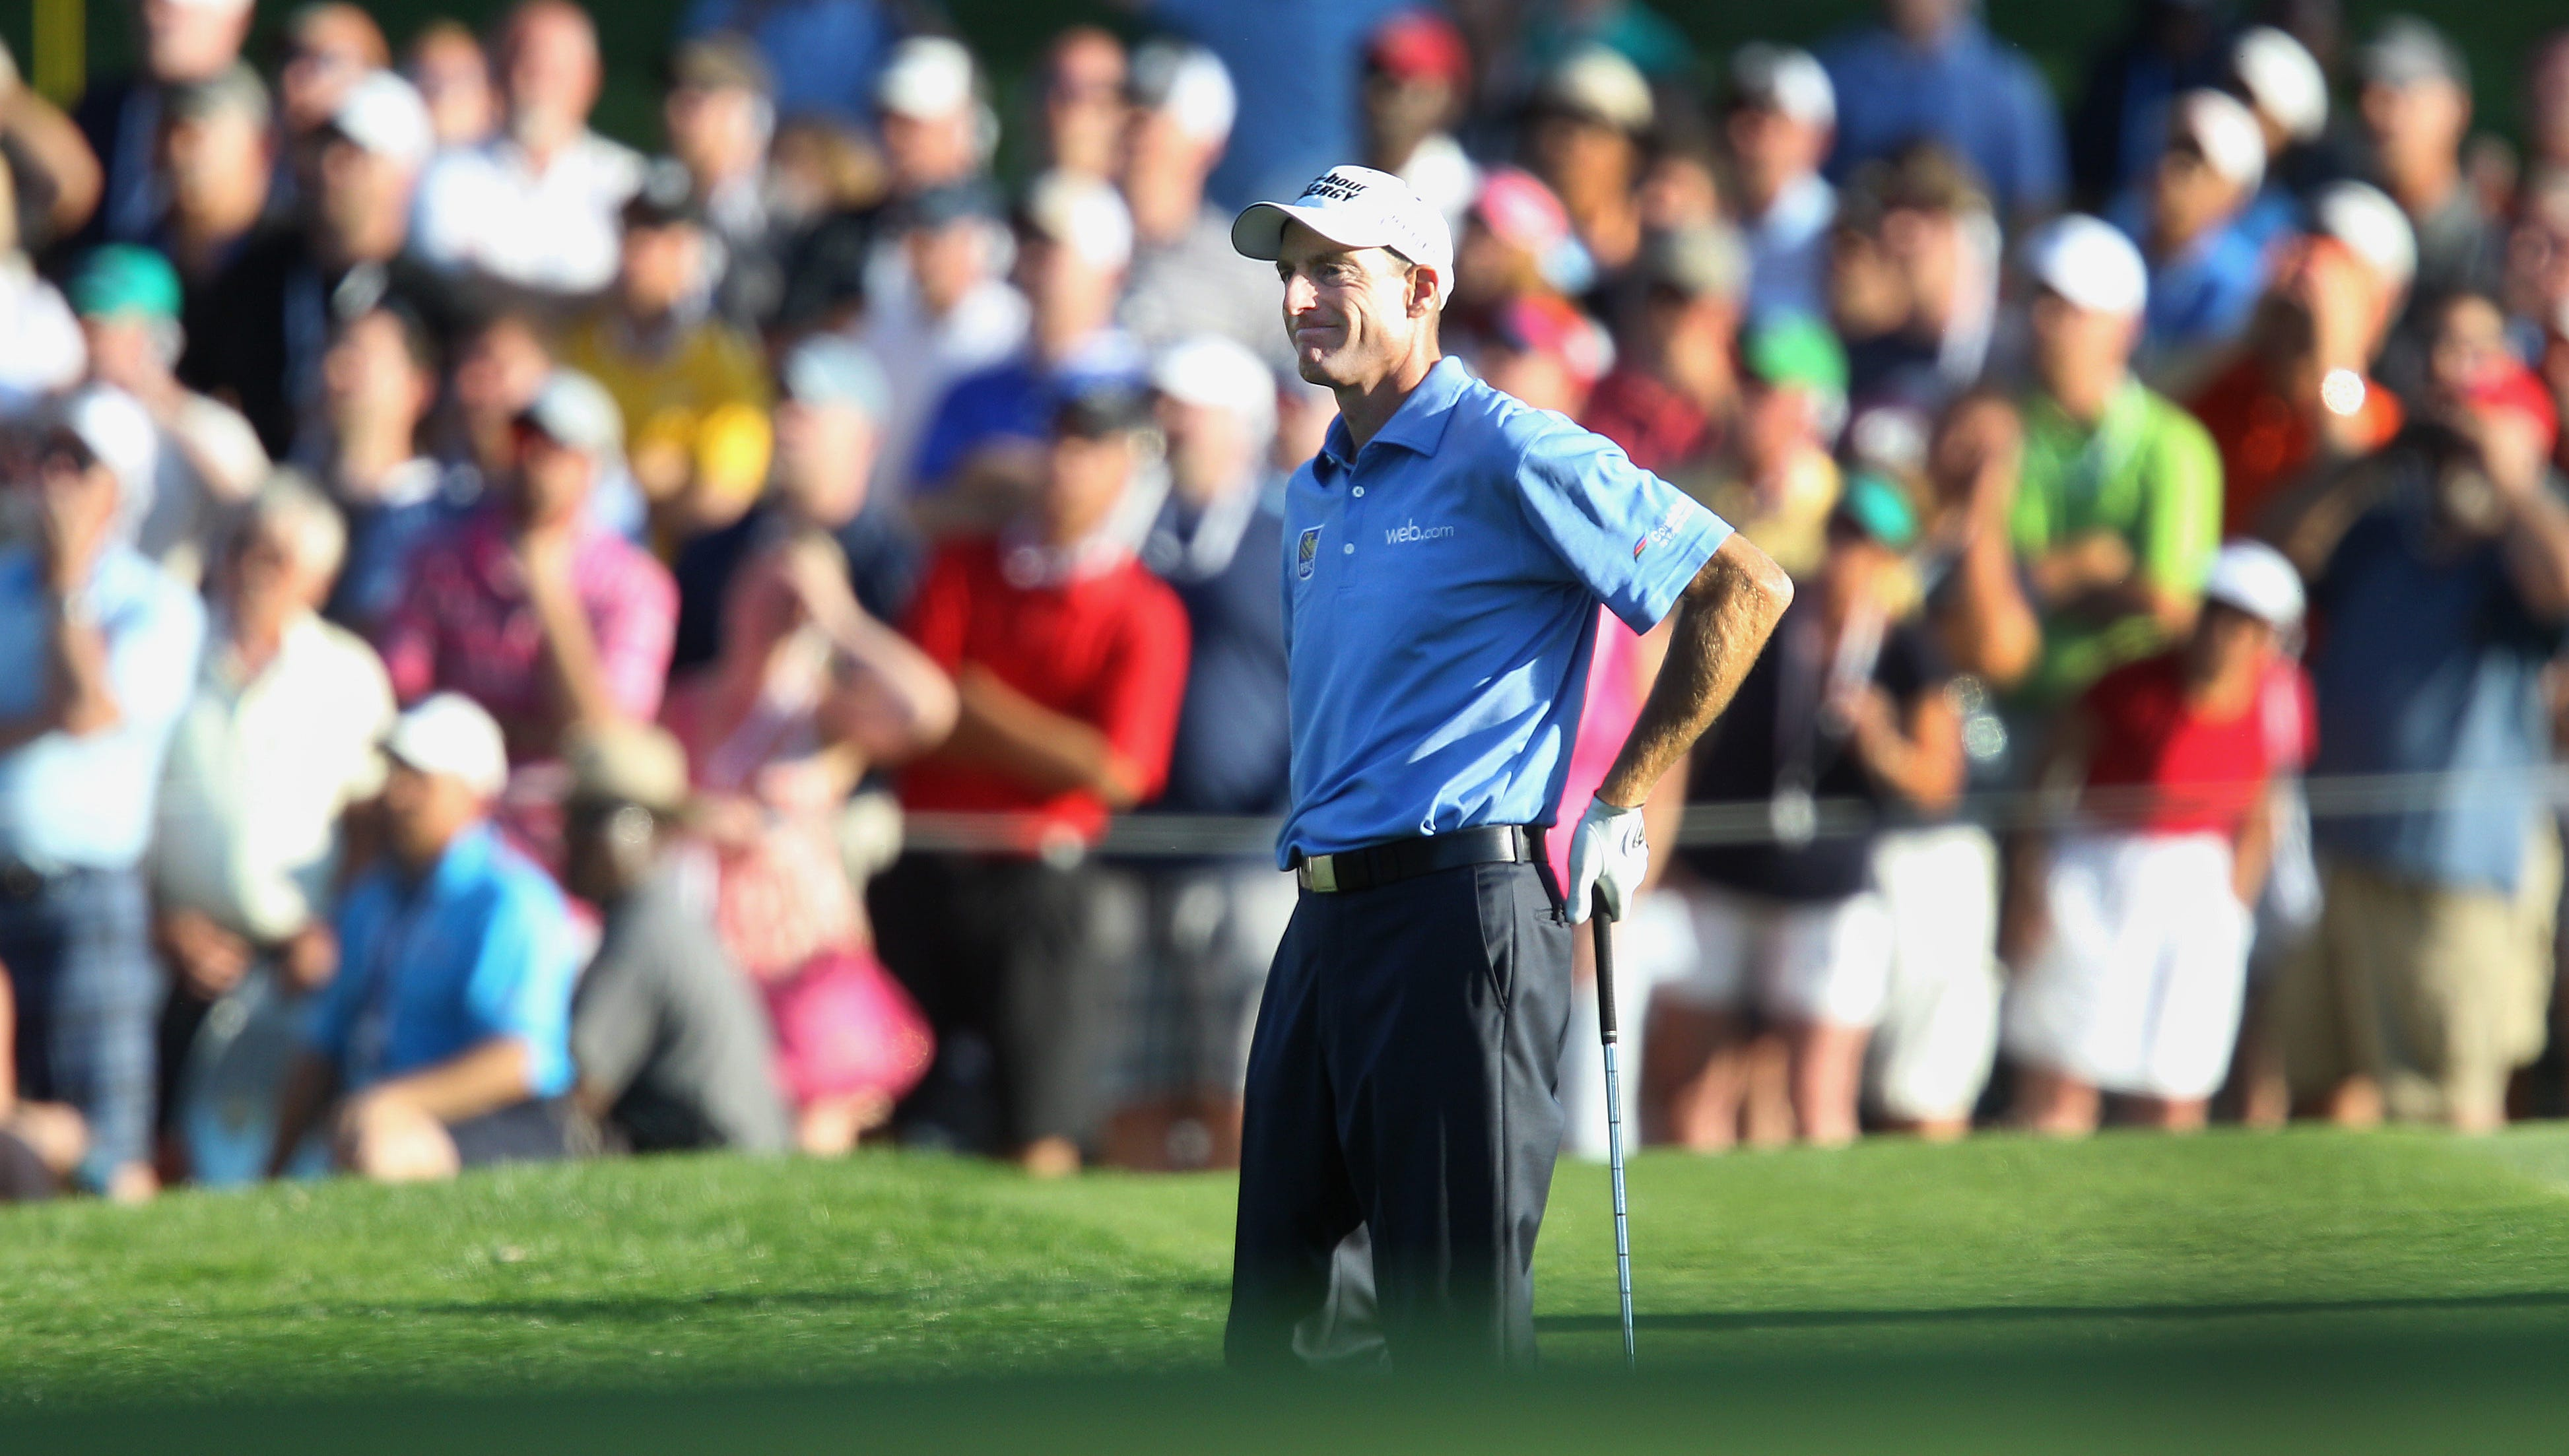 Jim Furyk isn't too happy with his shot to the green on 18.  It was short of the mark.